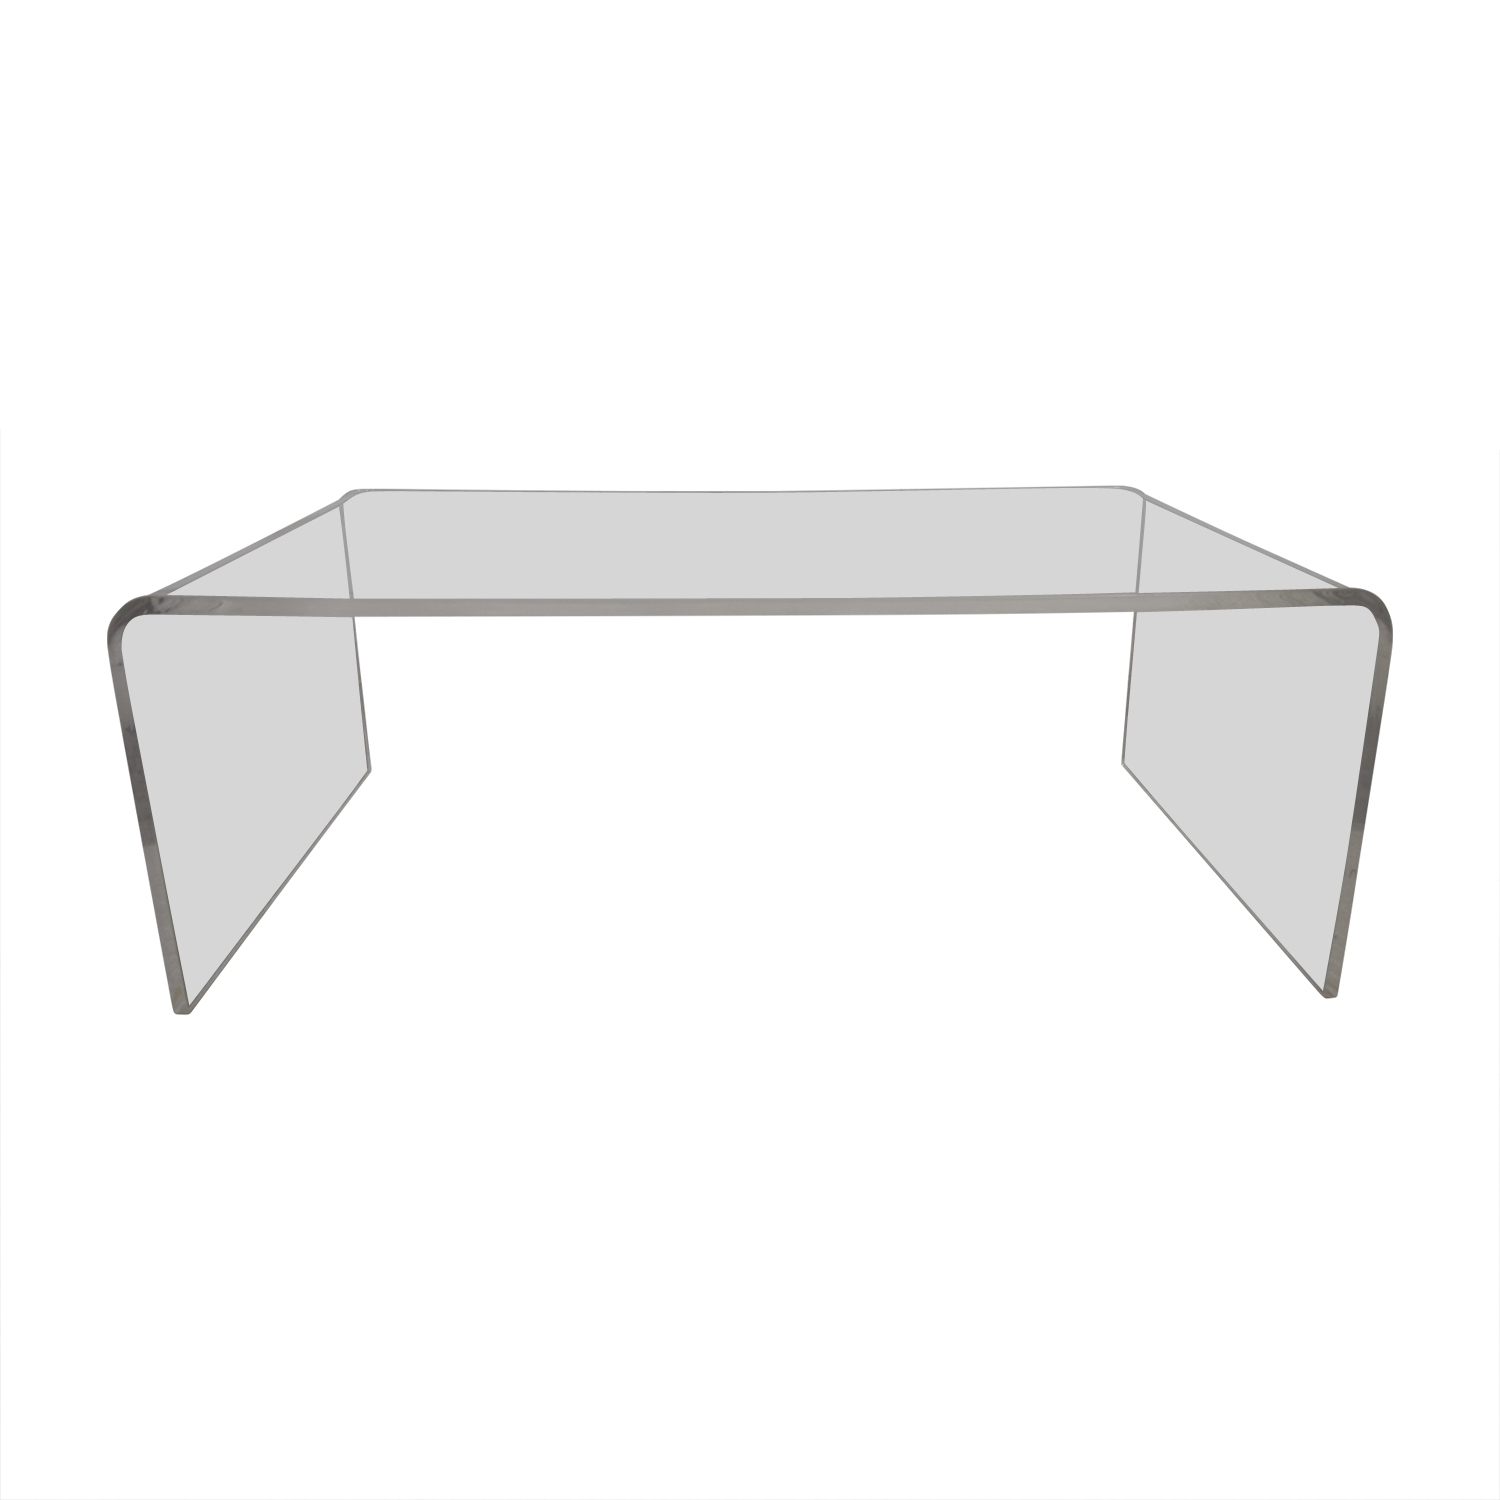 60% Off   Cb2 Cb2 Peekaboo Acrylic Ghost Tall Coffee Table / Tables For Peekaboo Acrylic Coffee Tables (Photo 1 of 30)